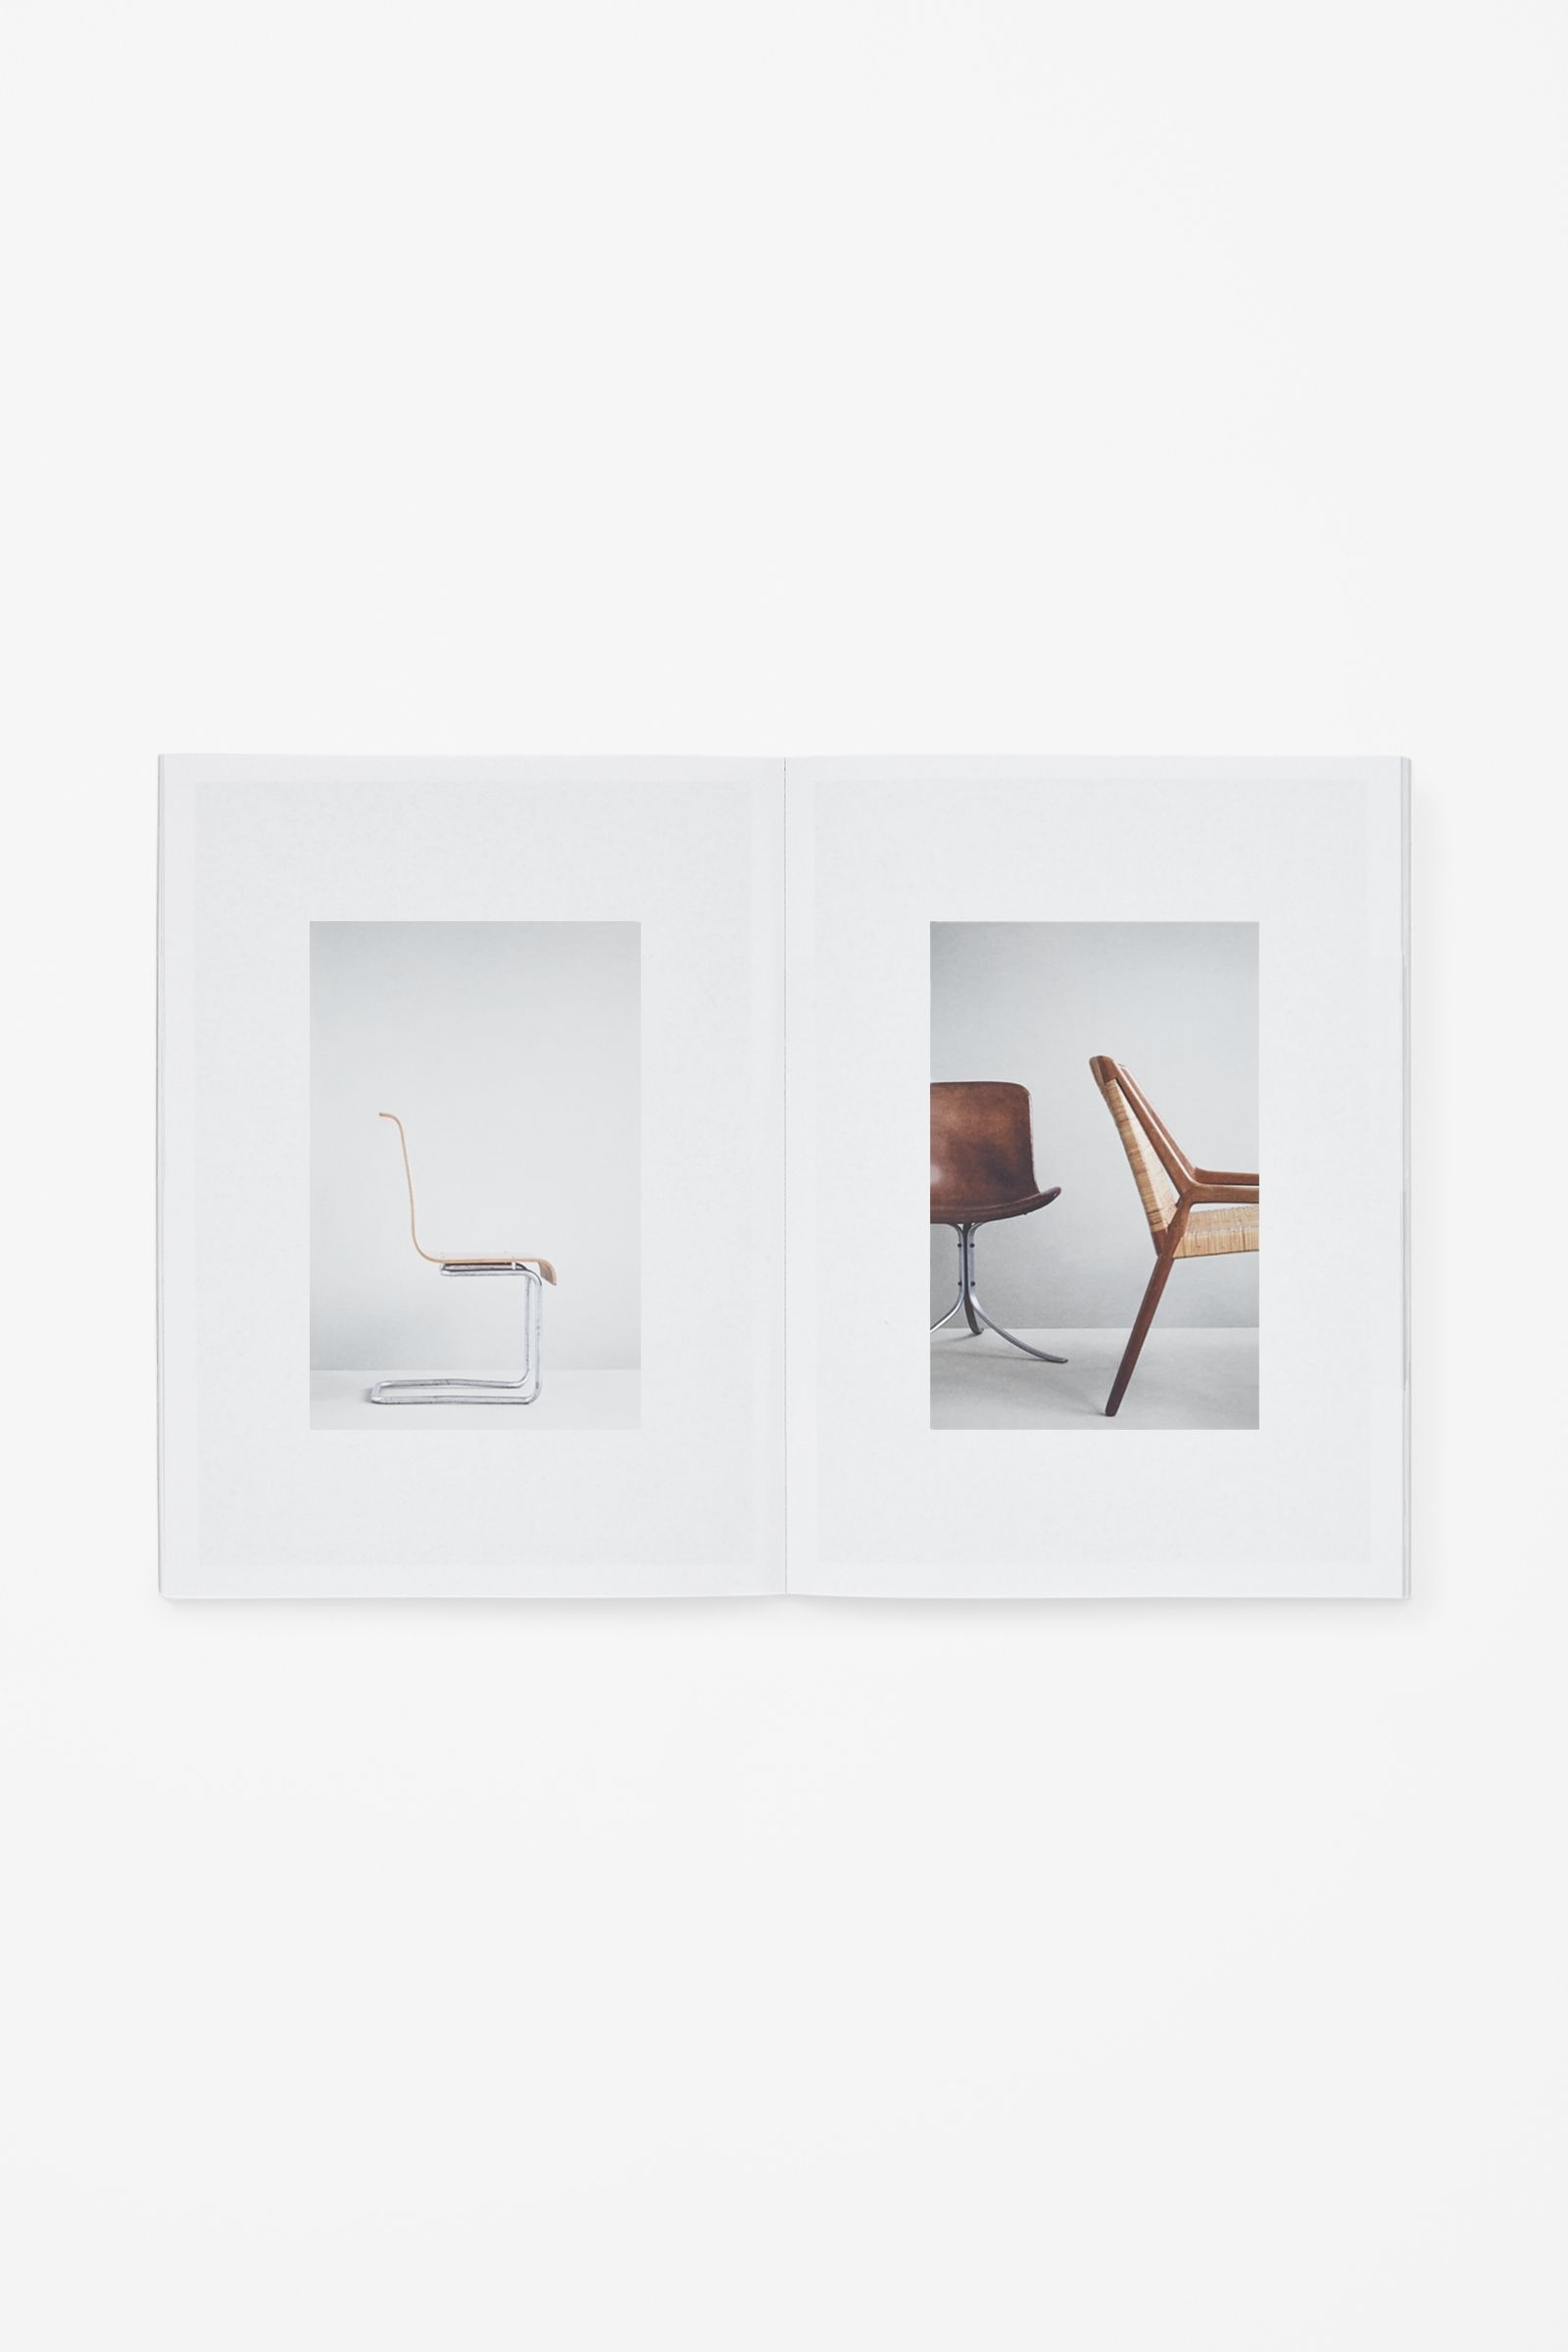 High Quality Layout, Magazine Spread, Photography, Chairs, Furniture, Negative Space